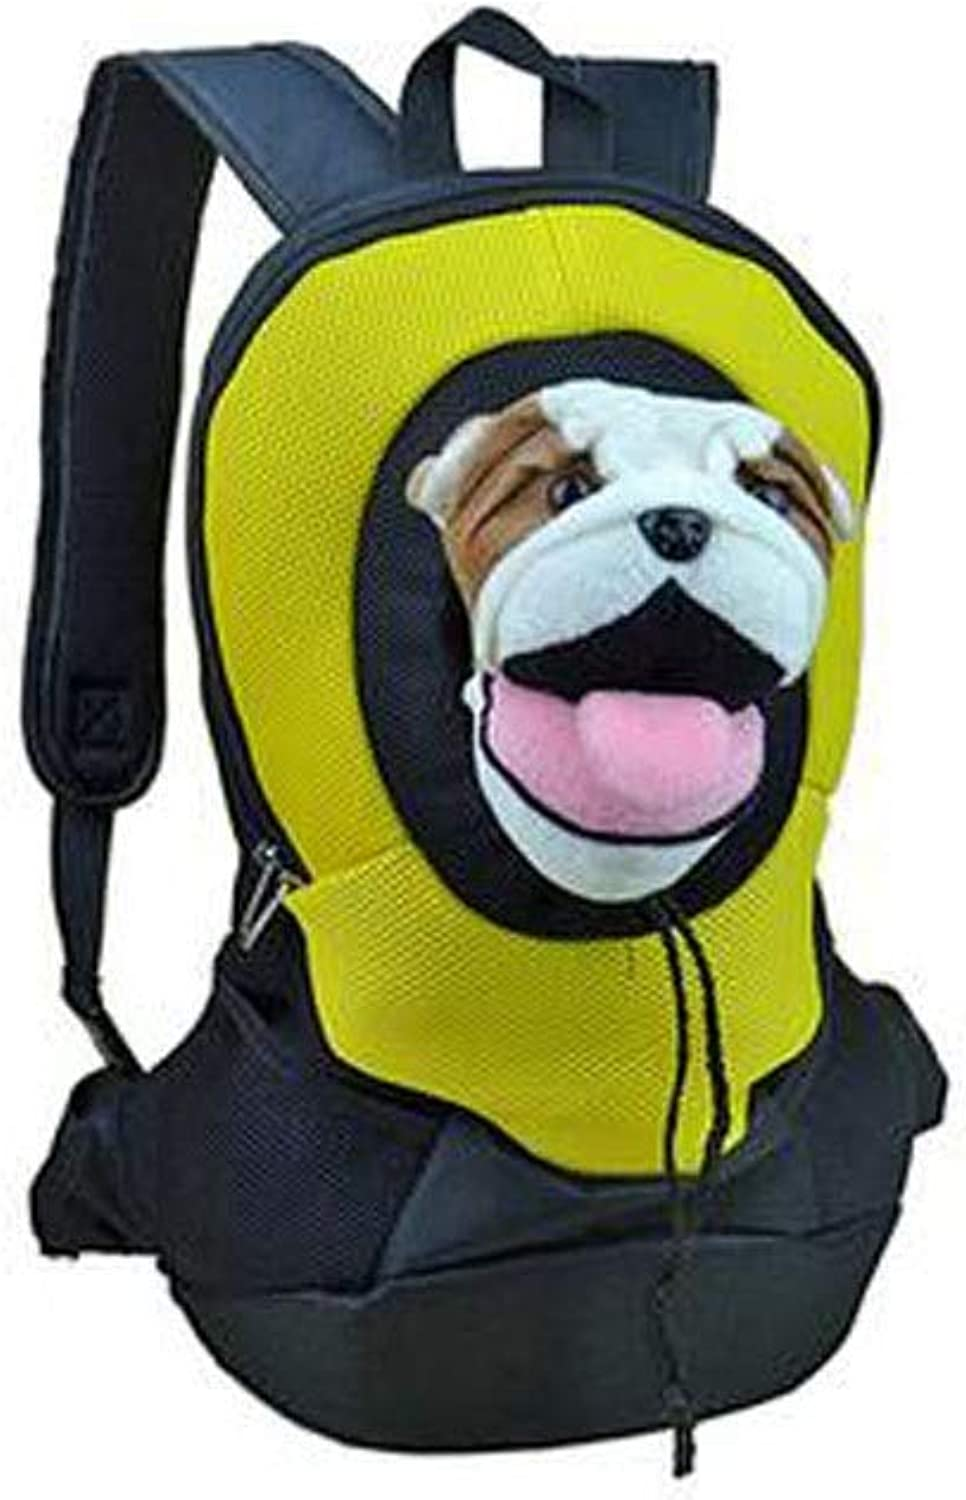 Belted Pet Travel Backpack, Wearable, Dustproof, Breathable, Suitable for Dogs, Cats, Small Pets, bluee, Suitable for Outdoor Travel, Hiking, Camping (color   LYellow)